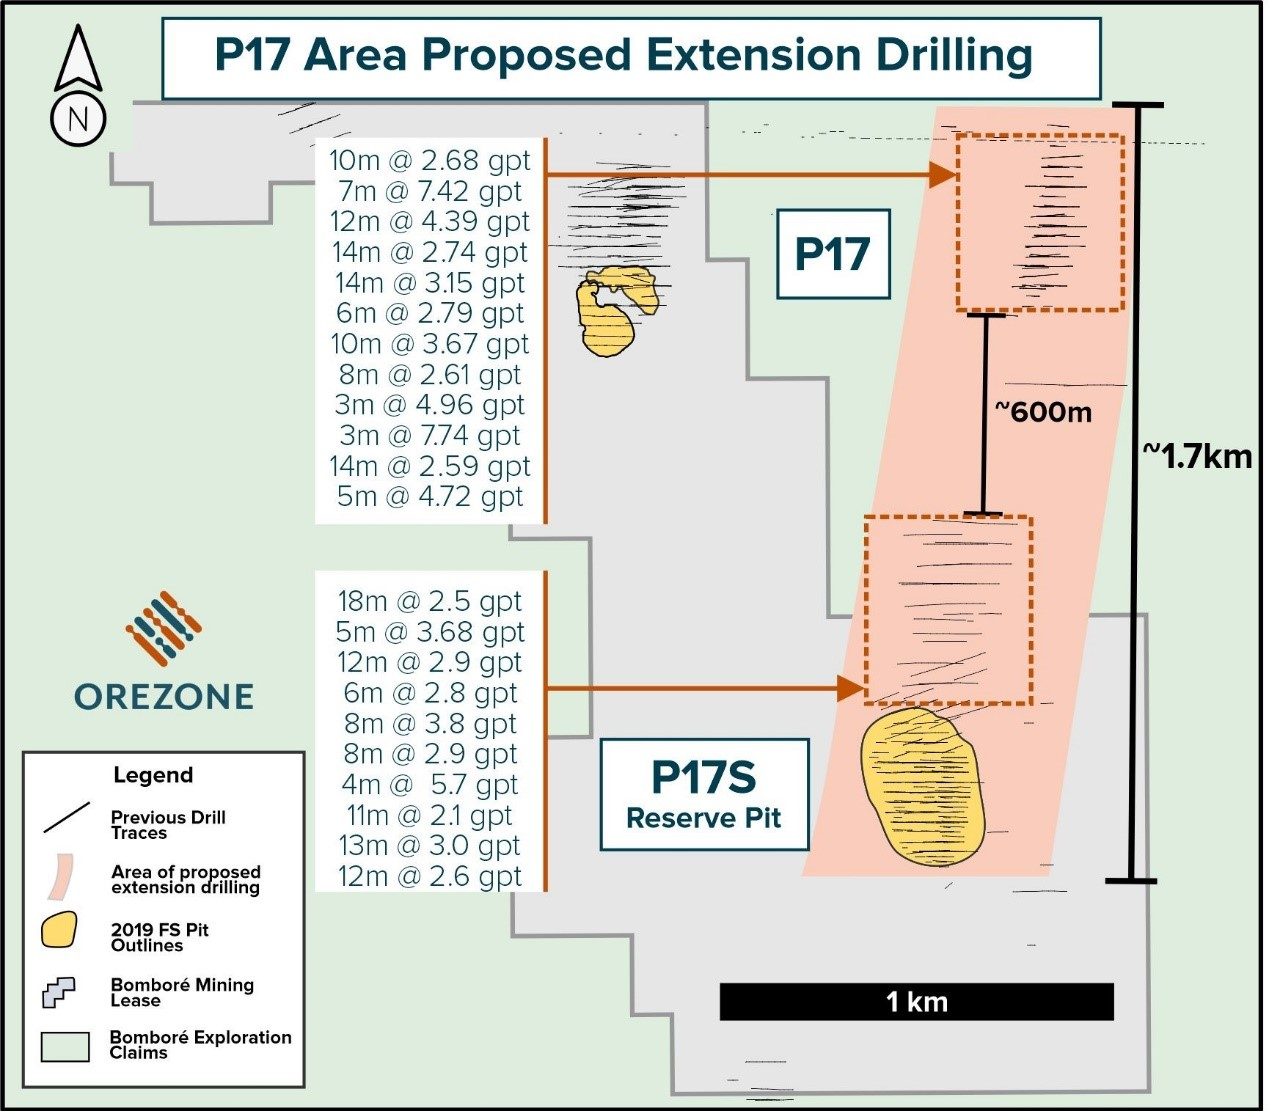 Bombor¨¦ Gold Project: P17 - Plan View of Prospective Exploration Potential